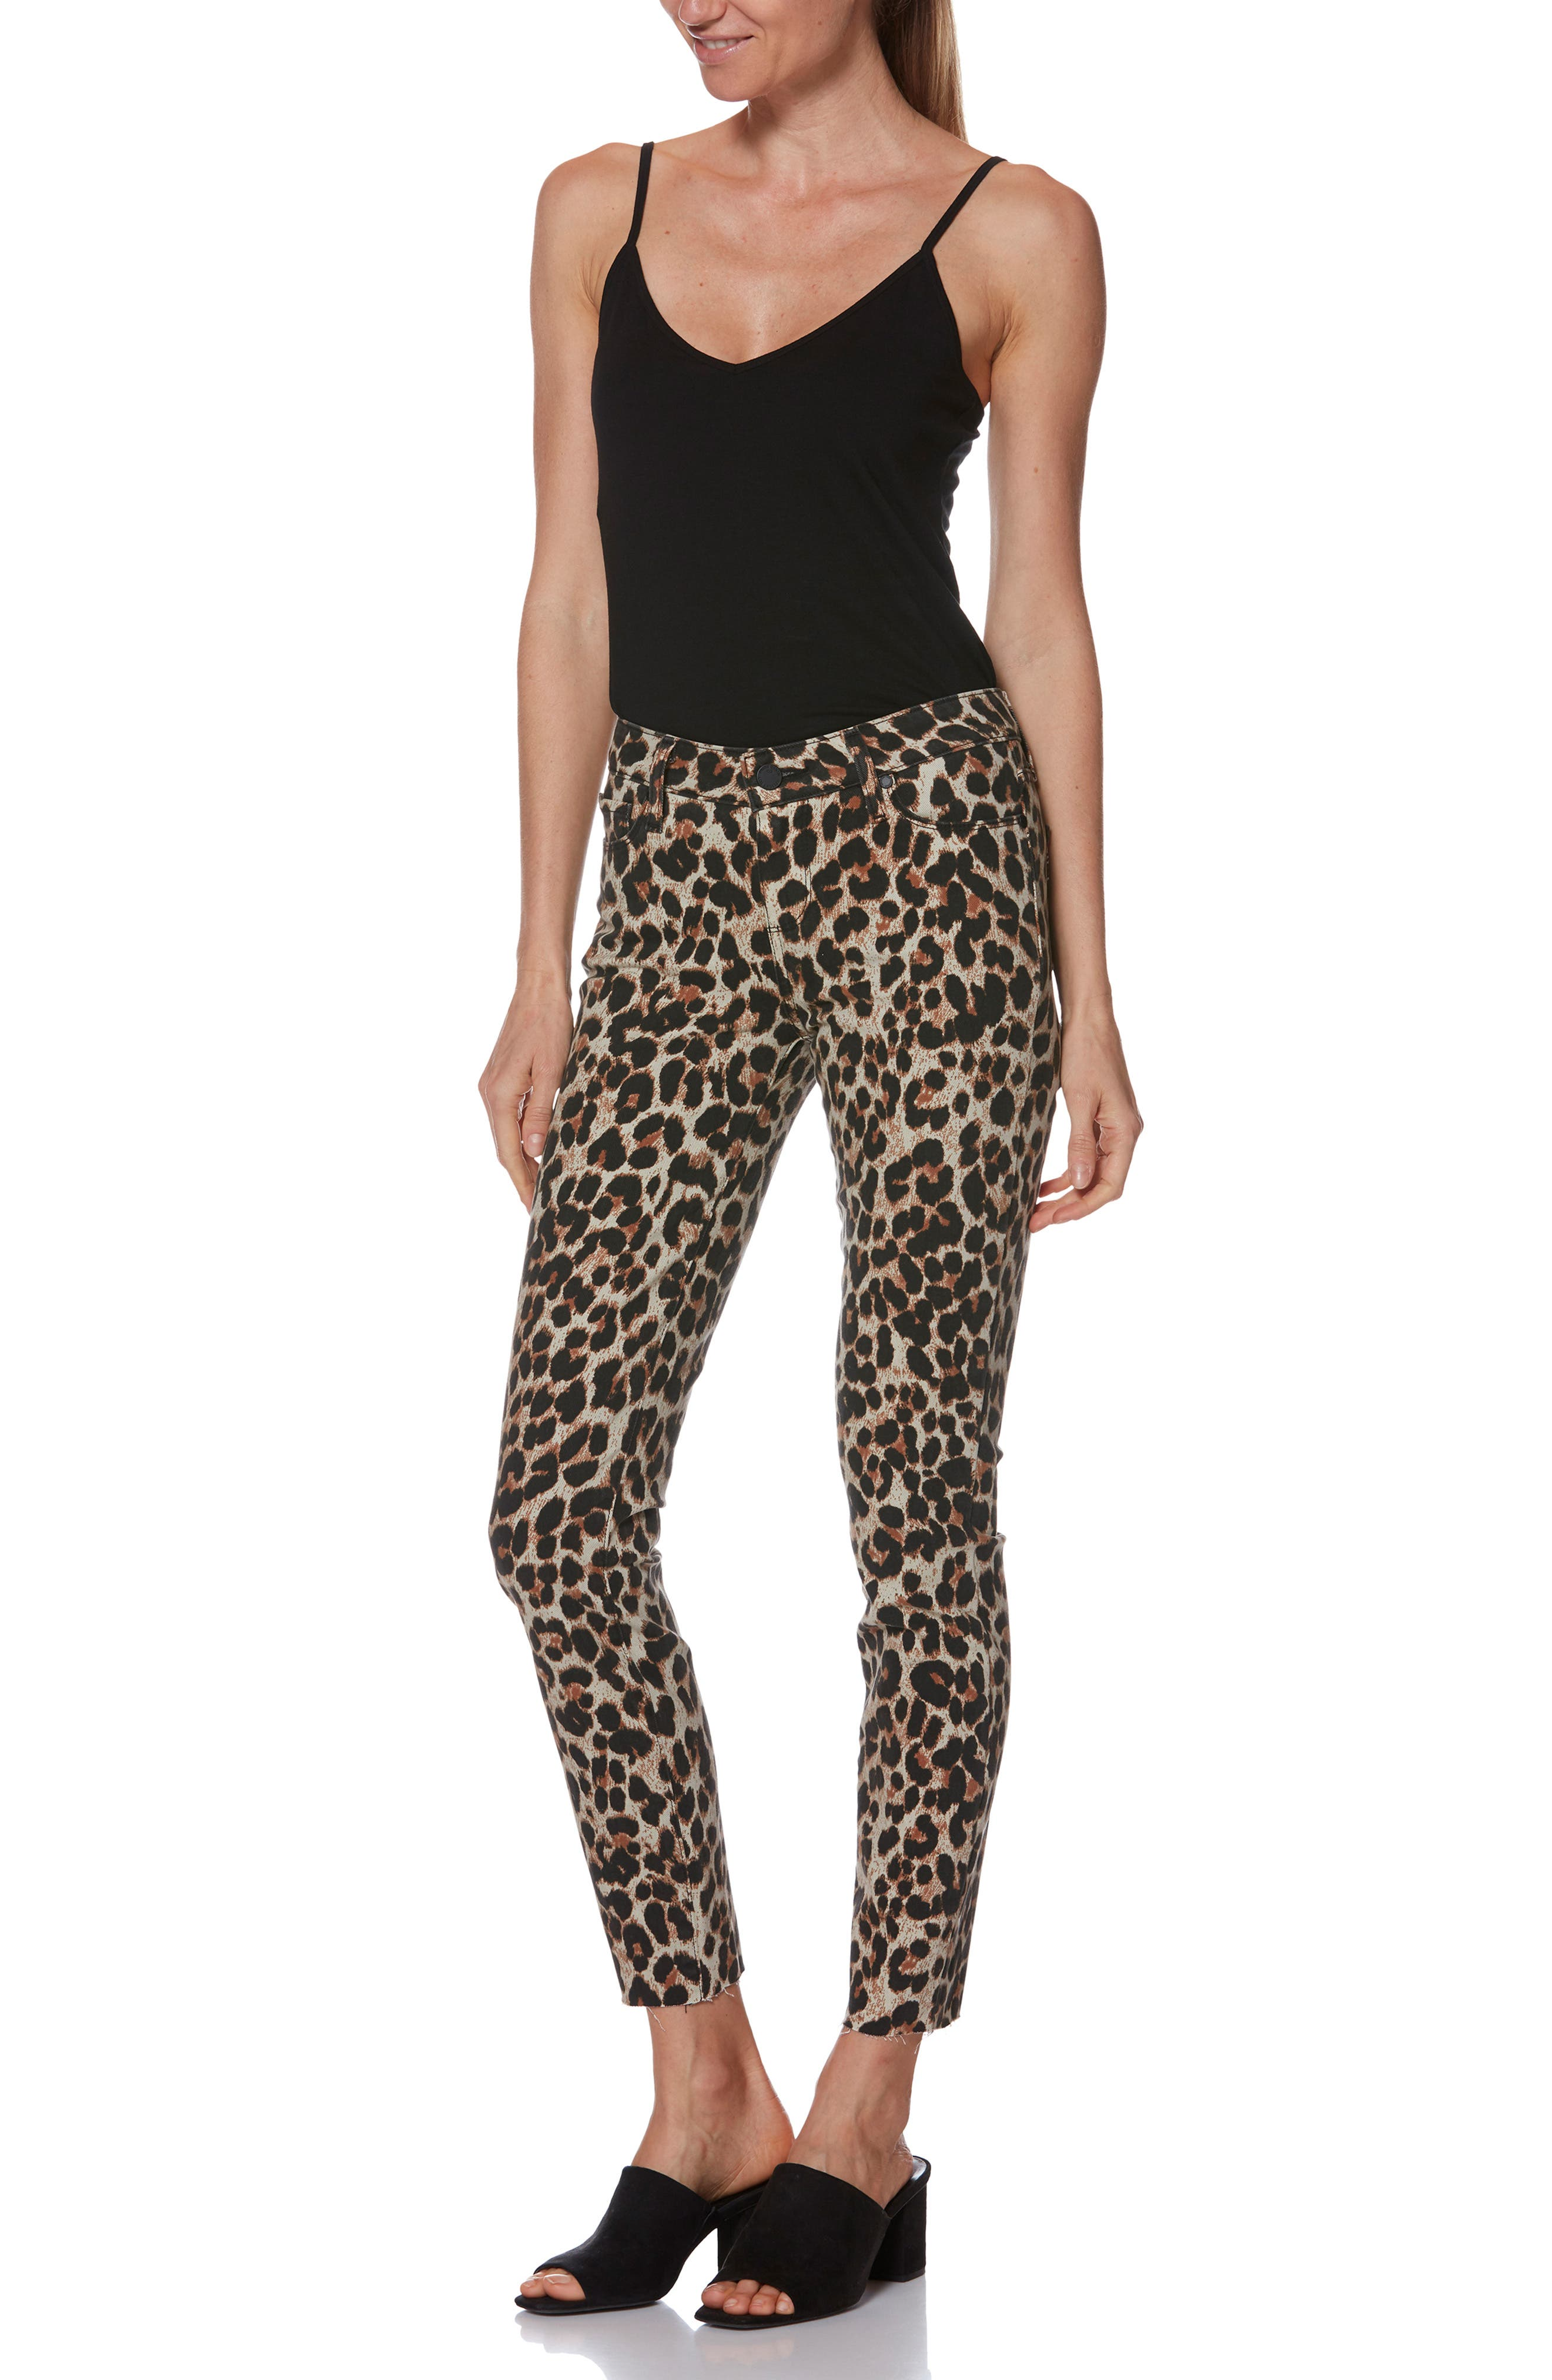 Verdugo Ankle Skinny Jeans,                             Alternate thumbnail 8, color,                             SAHARA LEOPARD